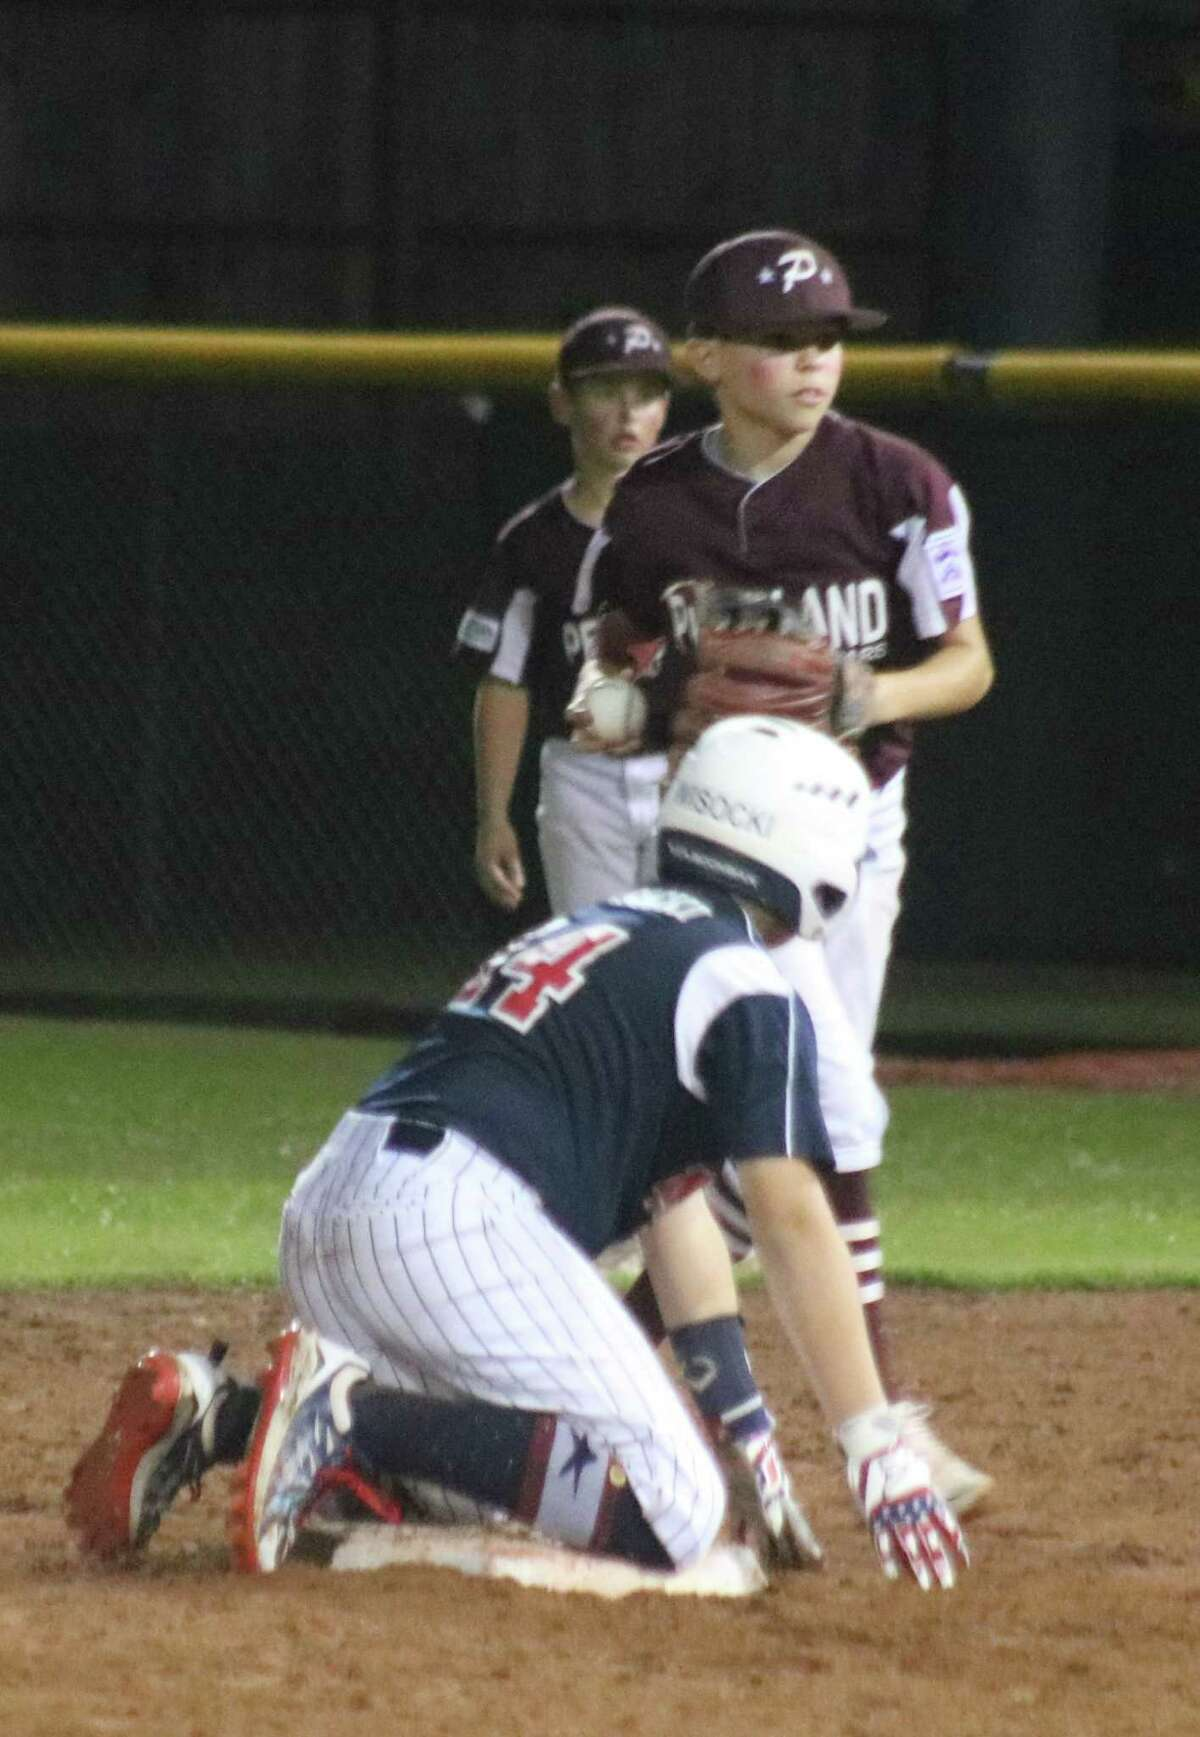 NASA 12s clean-up hitter Jackson Wisocki finds himself on second base after belting a two-RBI single to right field and going to second on a belated throw home in the fuirst inning. But it would be the team's next-to-last hit of the night in their Section 3 opener.